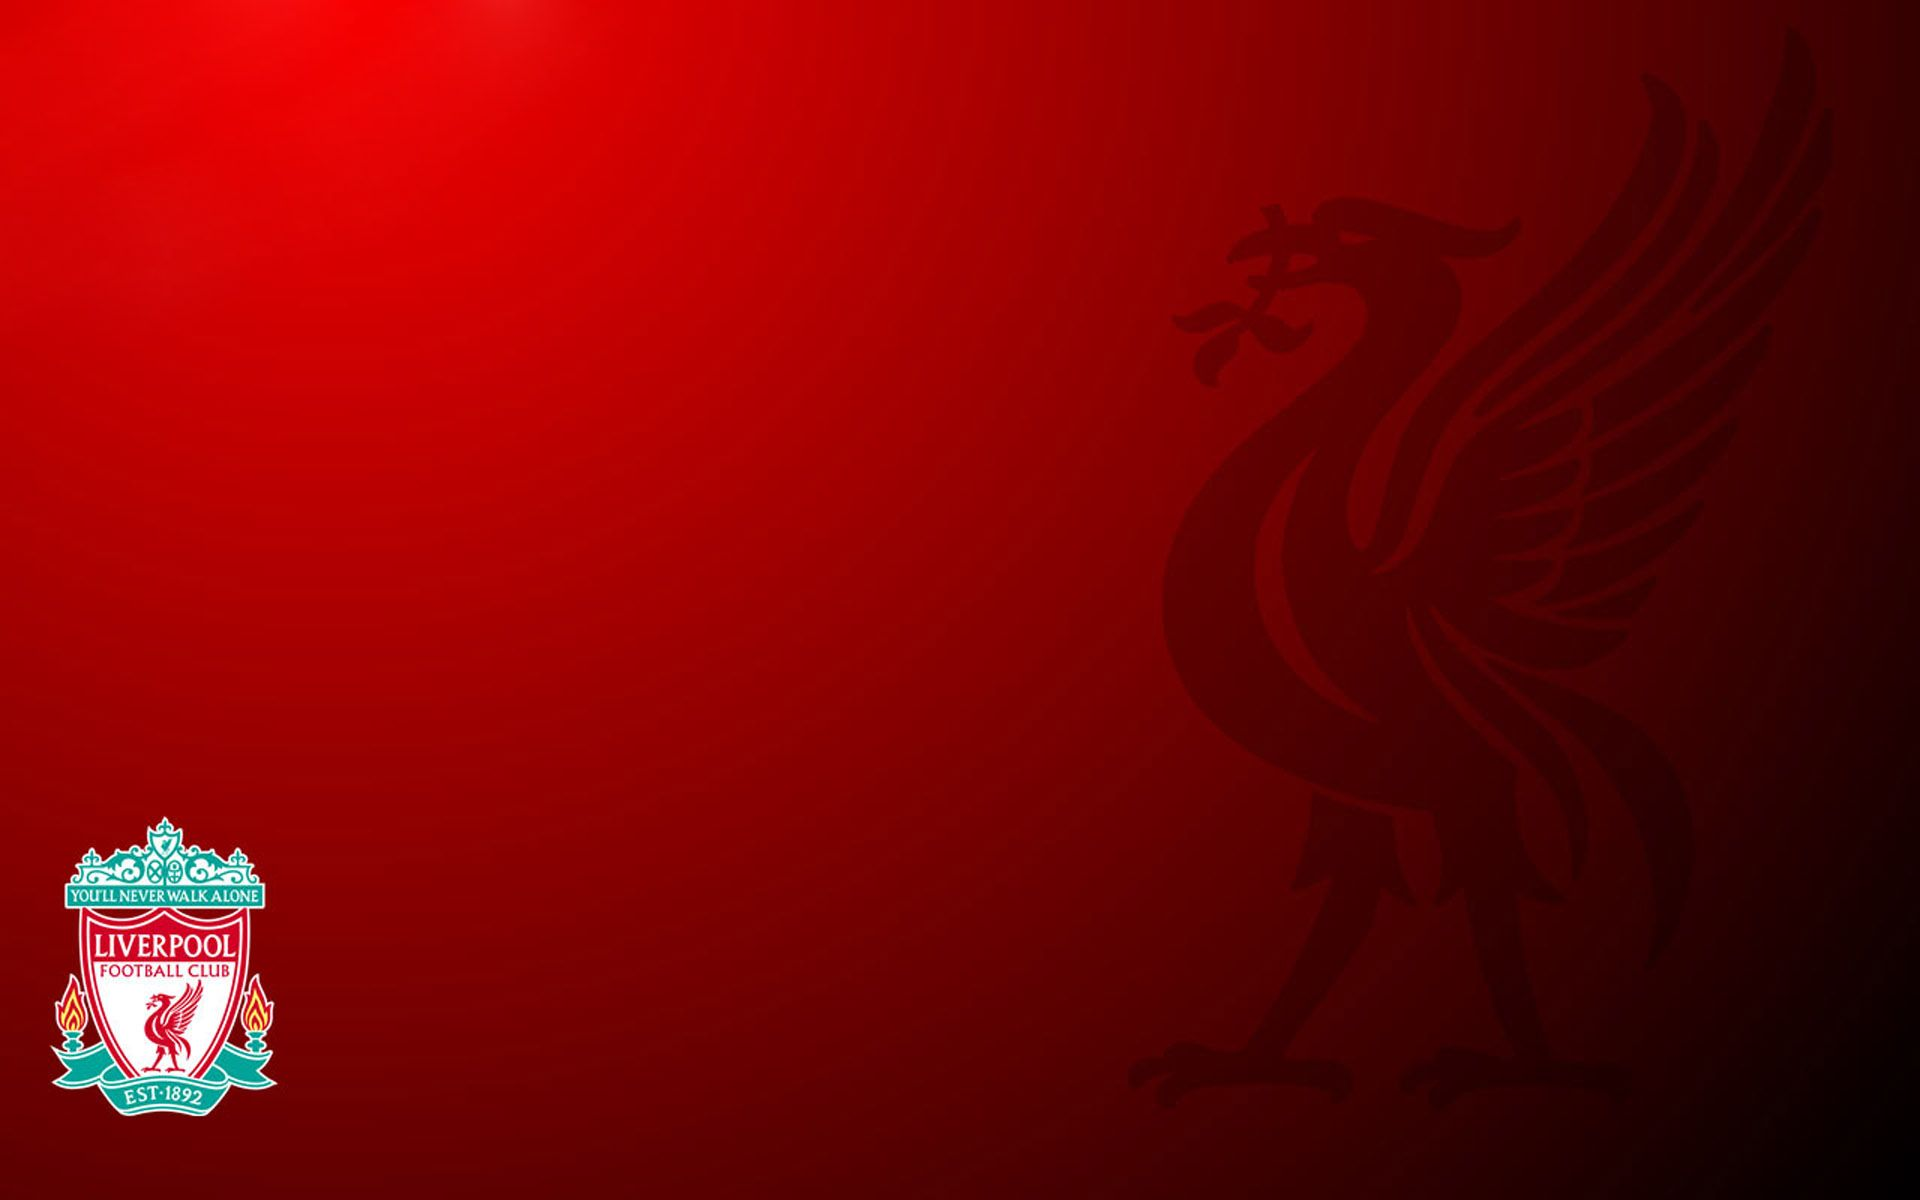 HD Liverpool Wallpapers 1920x1200